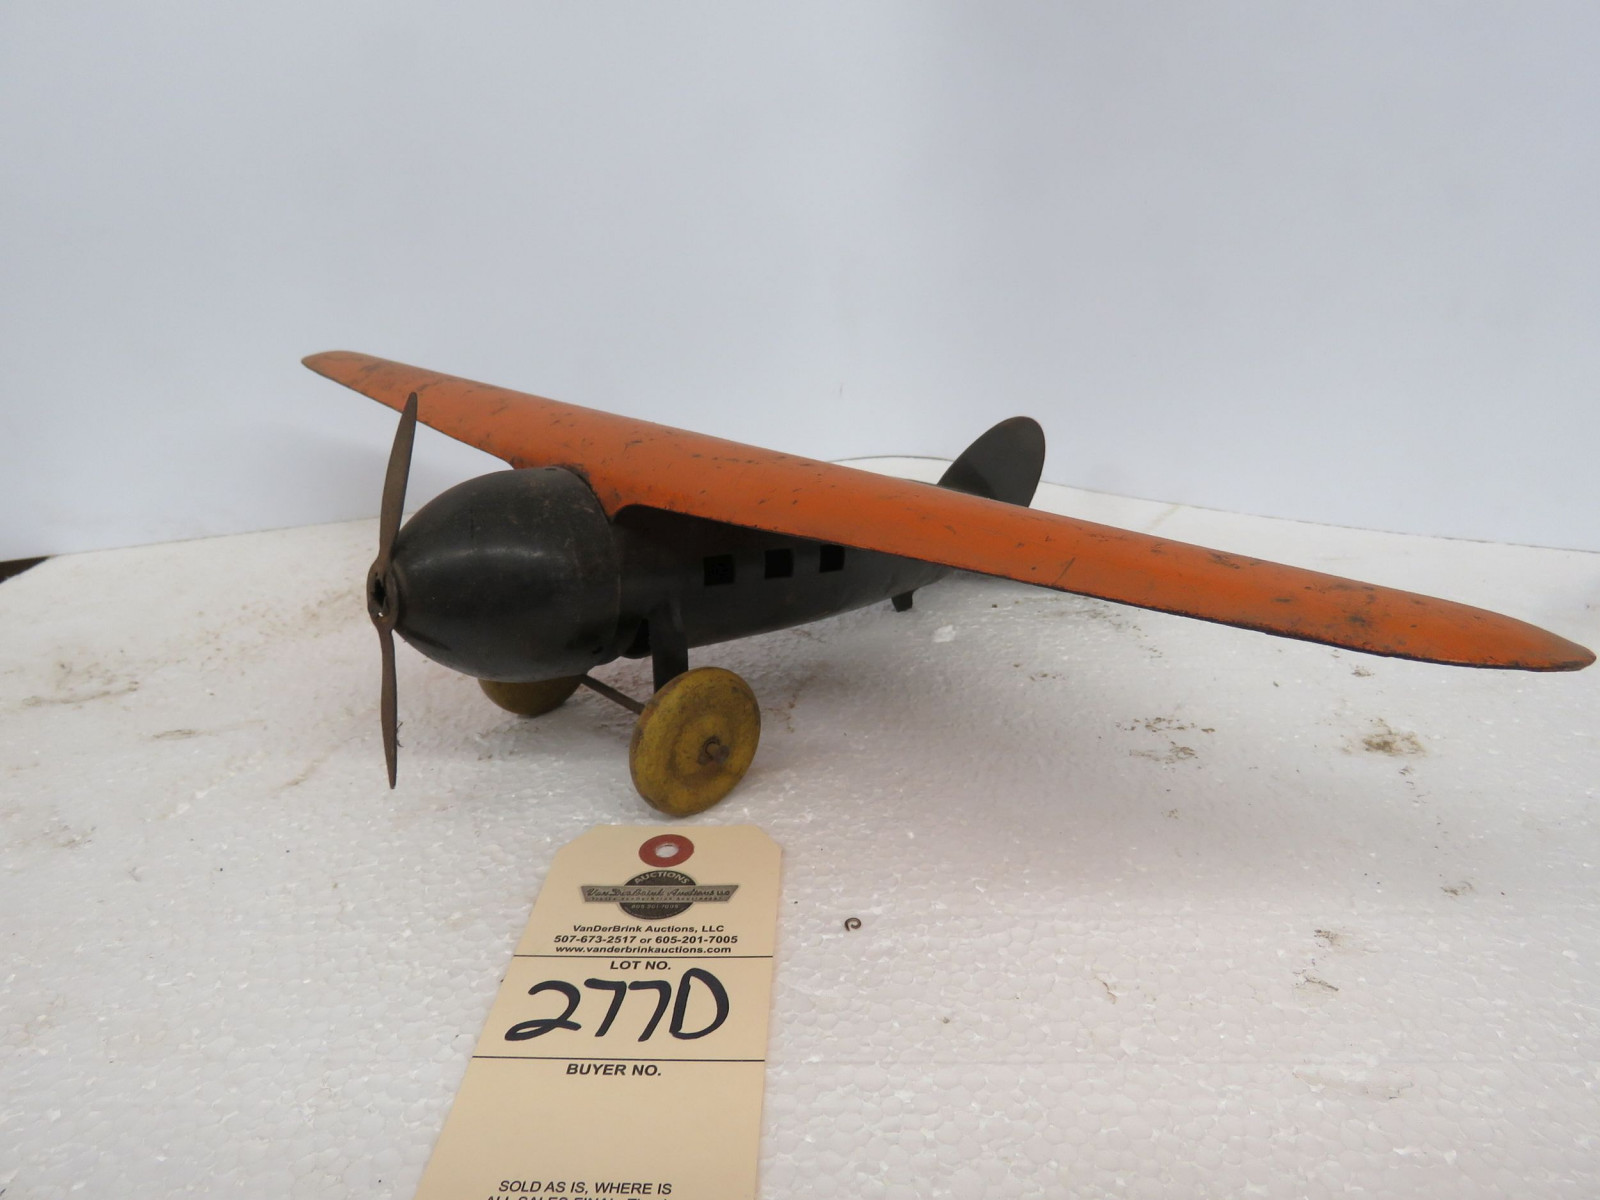 Vintage Die Cast Airplane - Image 1